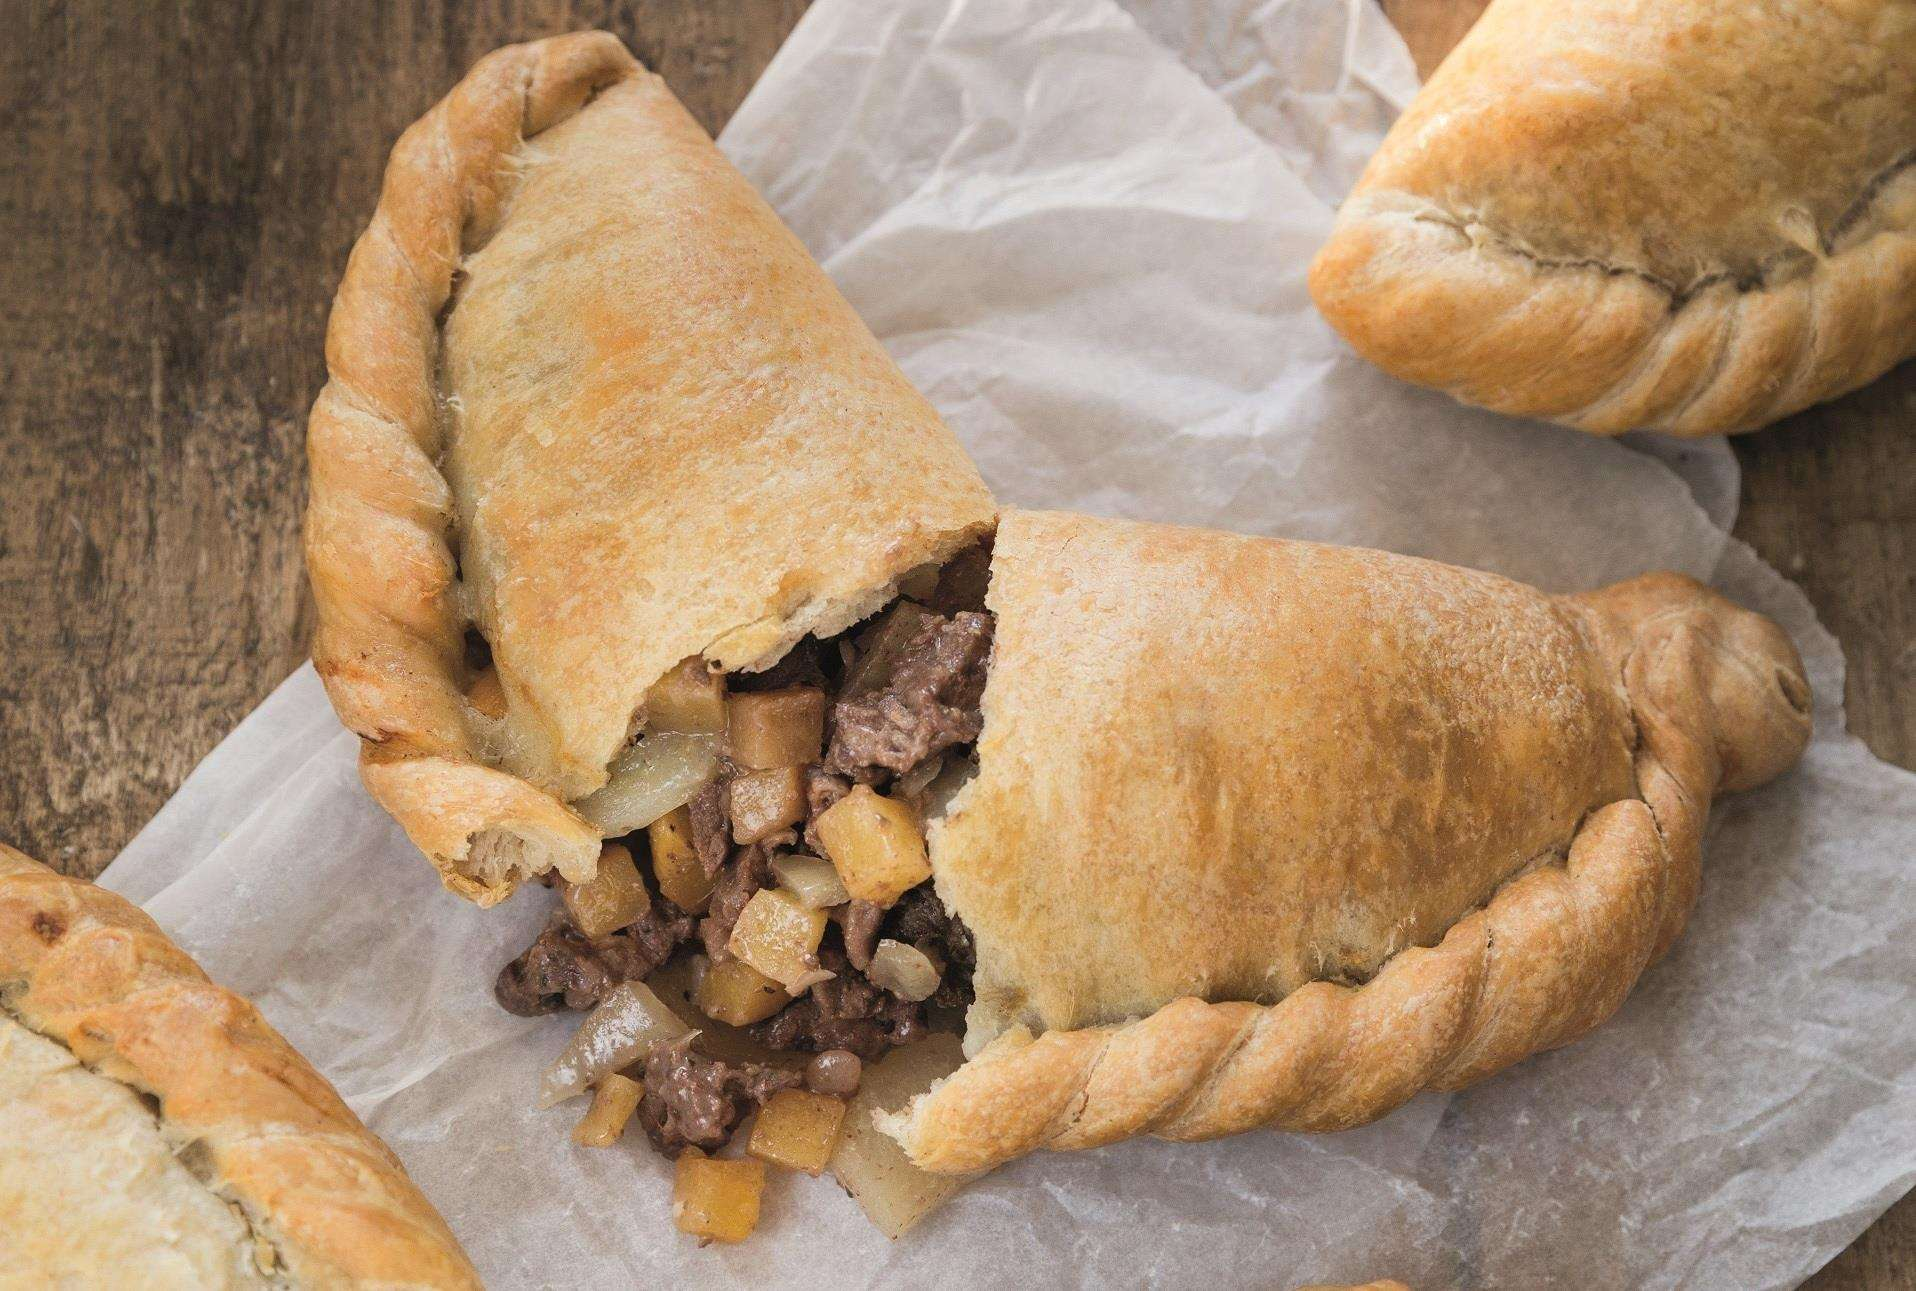 Fire crews were called to a burnt pasty. (Pasty Stock Image) Picture: Warrens Bakery.